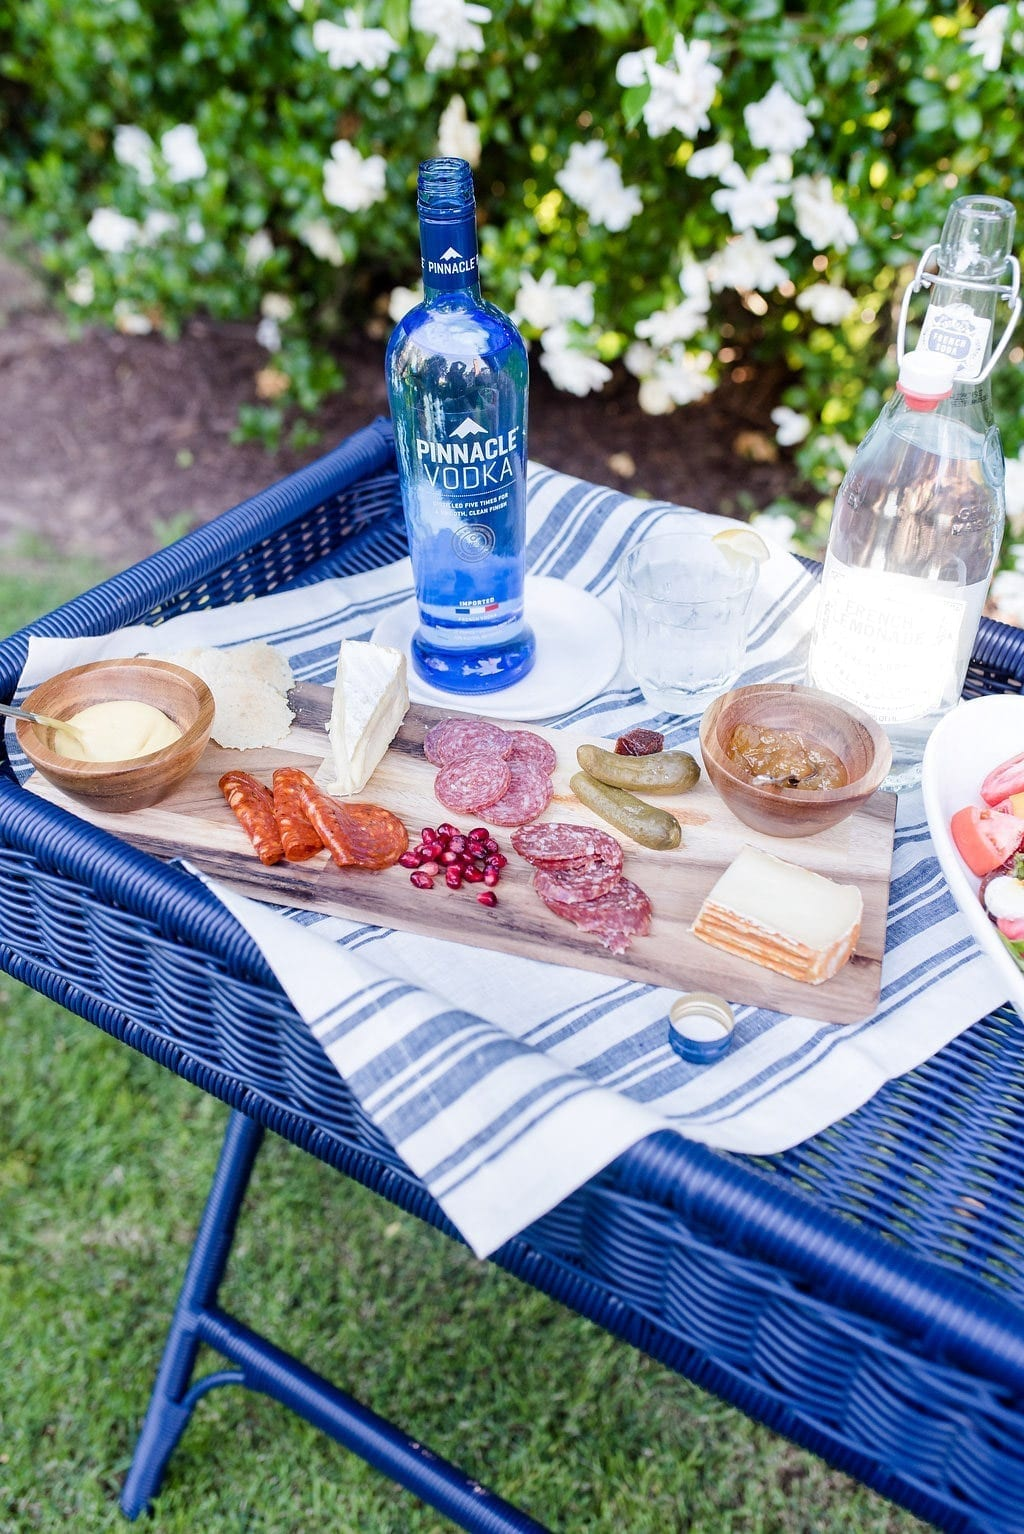 Pinnacle Vodka and French inspired food for French style entertaining.